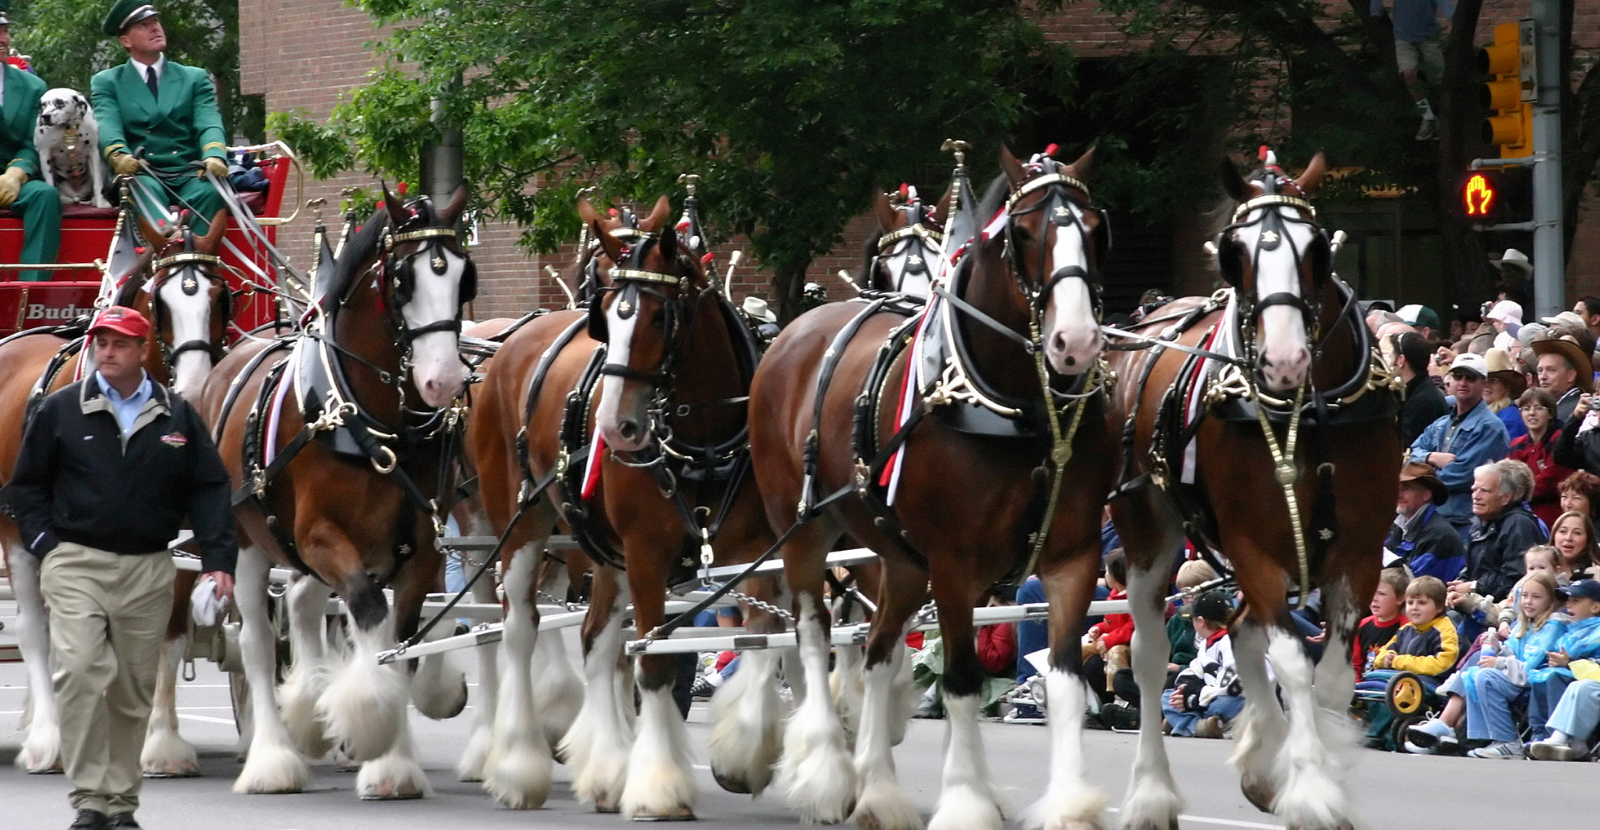 Dalmatian riding with Clydesdales